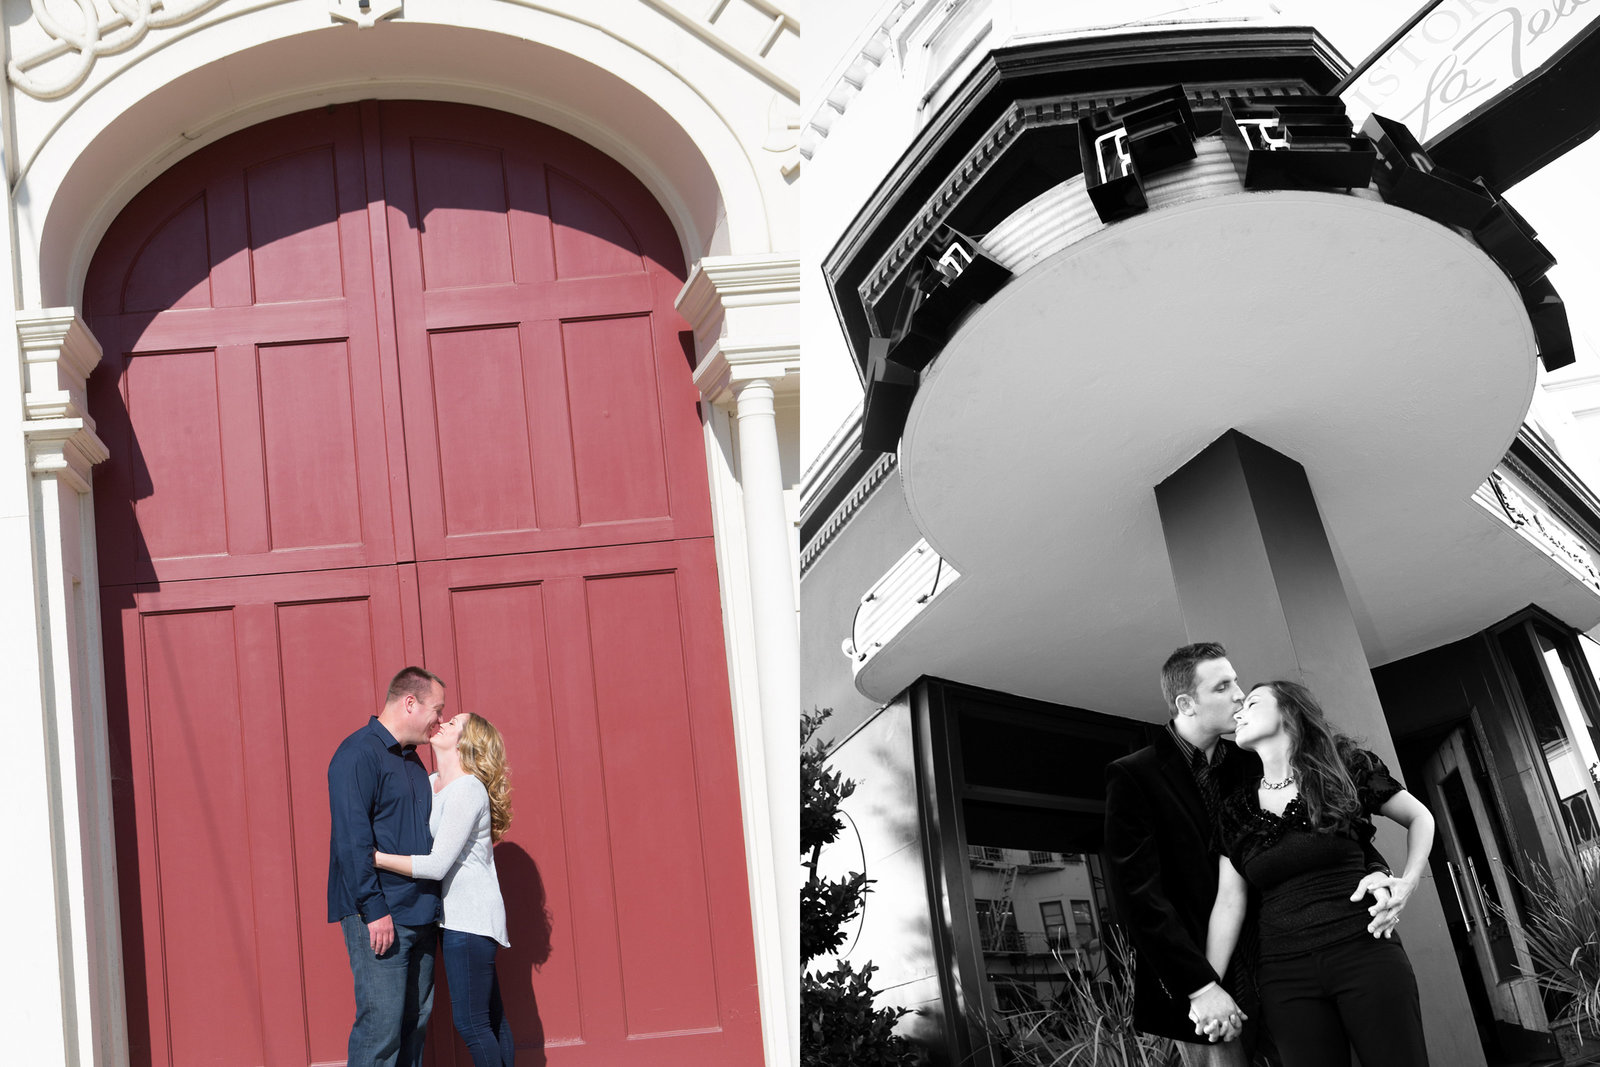 San Jose History Park, Engaged, Engagement Pictures, Jennifer Baciocco Photography, fire station,